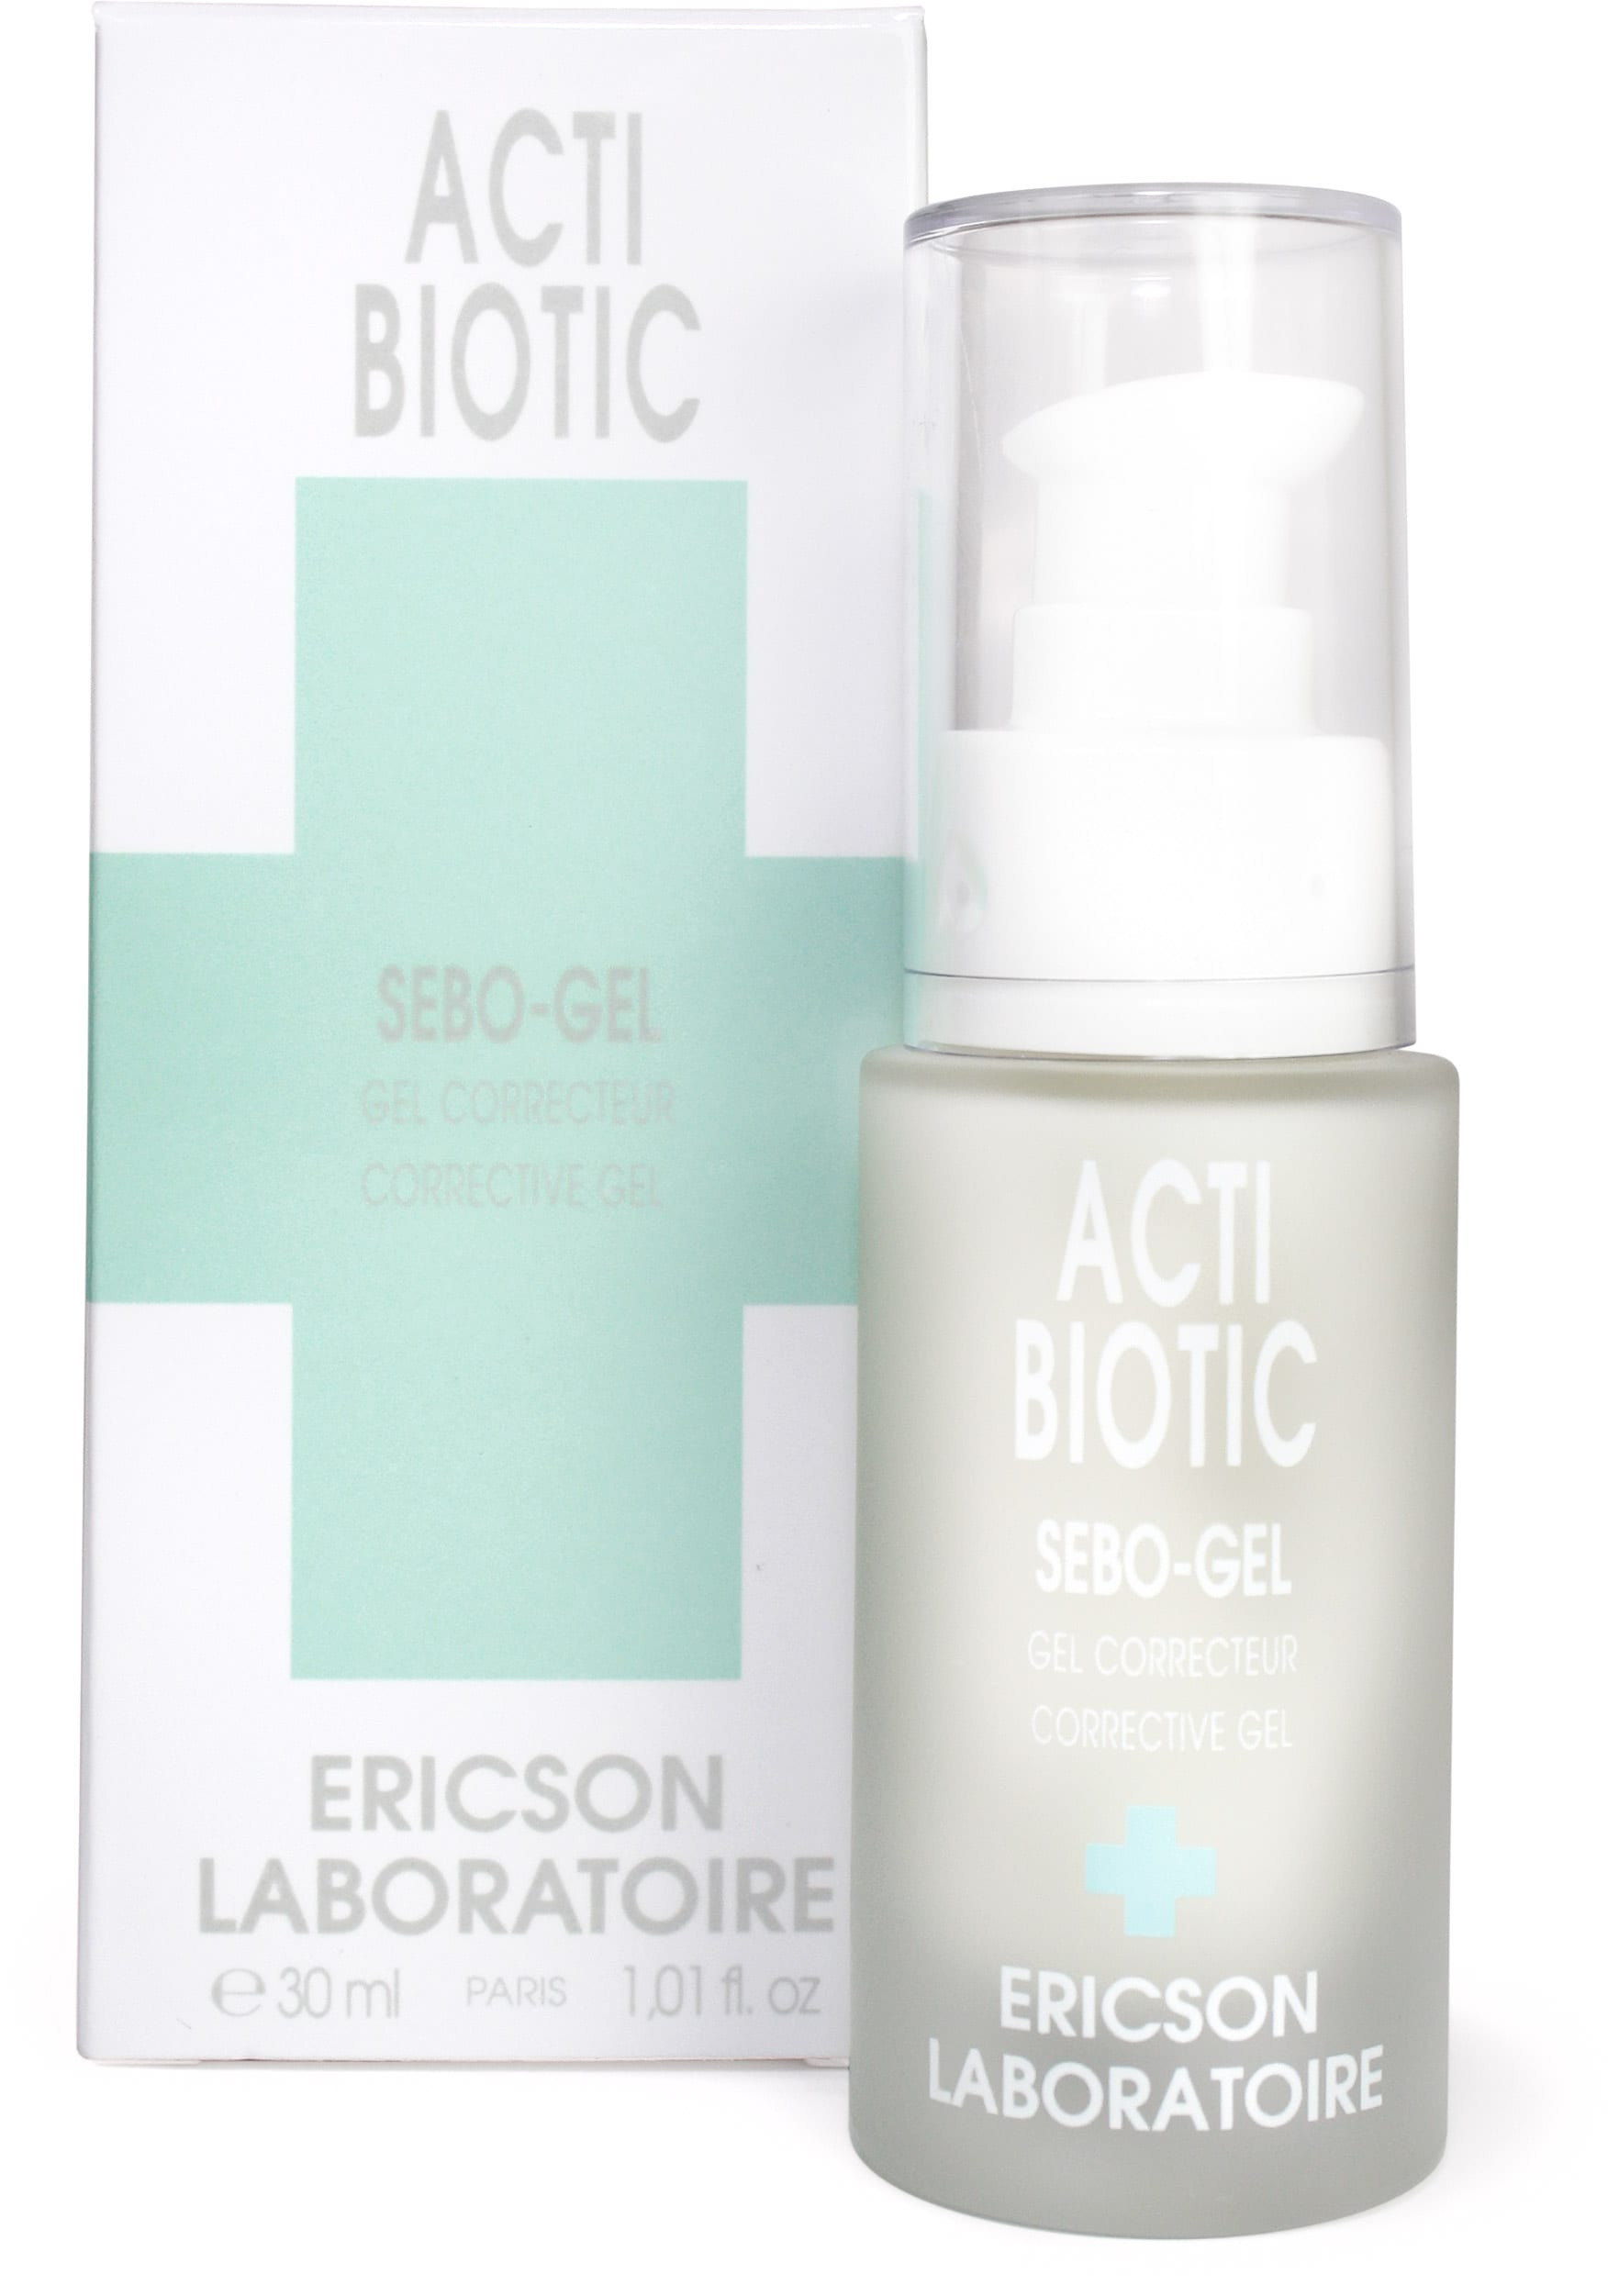 Acti-Biotic-Sebo-Gel